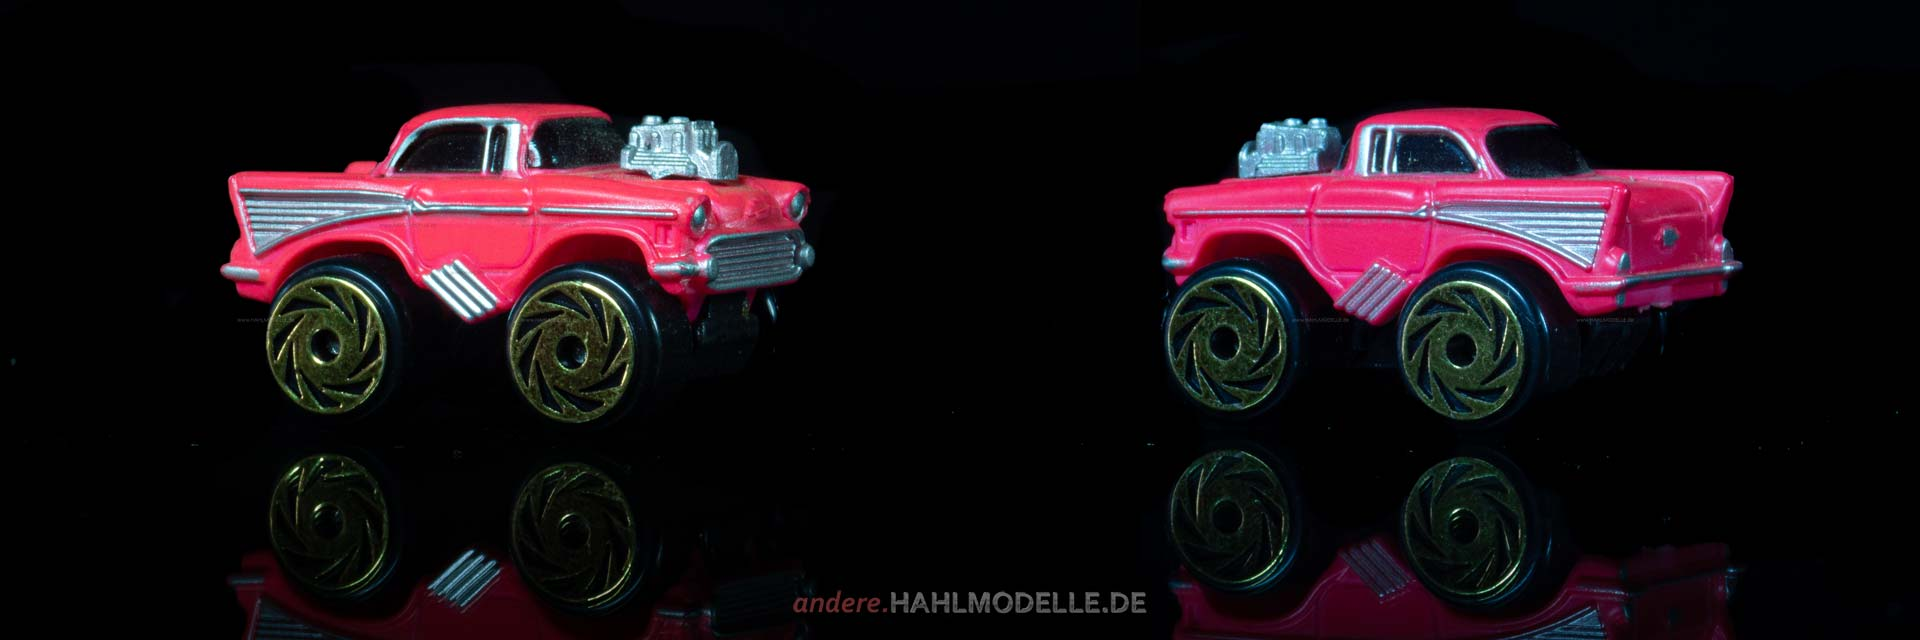 Chevrolet Bel Air Coupé | Dragster | Road Champs | ca. 1:160 | www.andere.hahlmodelle.de